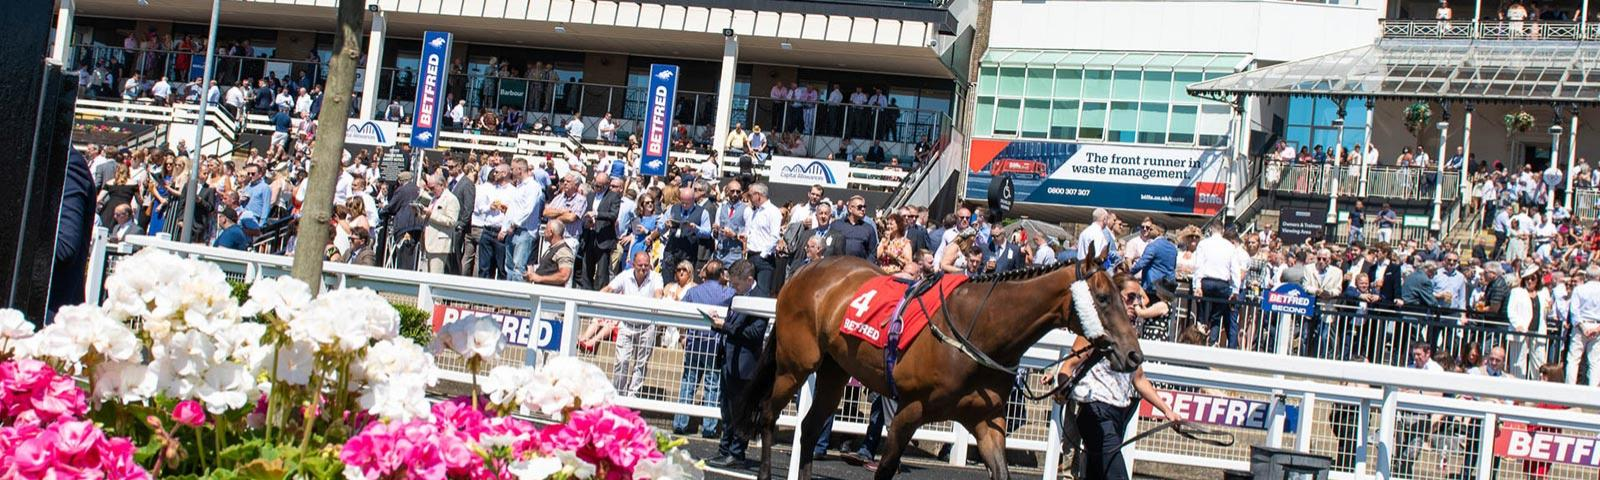 Horse being led through parade ring with the crowds in the background.